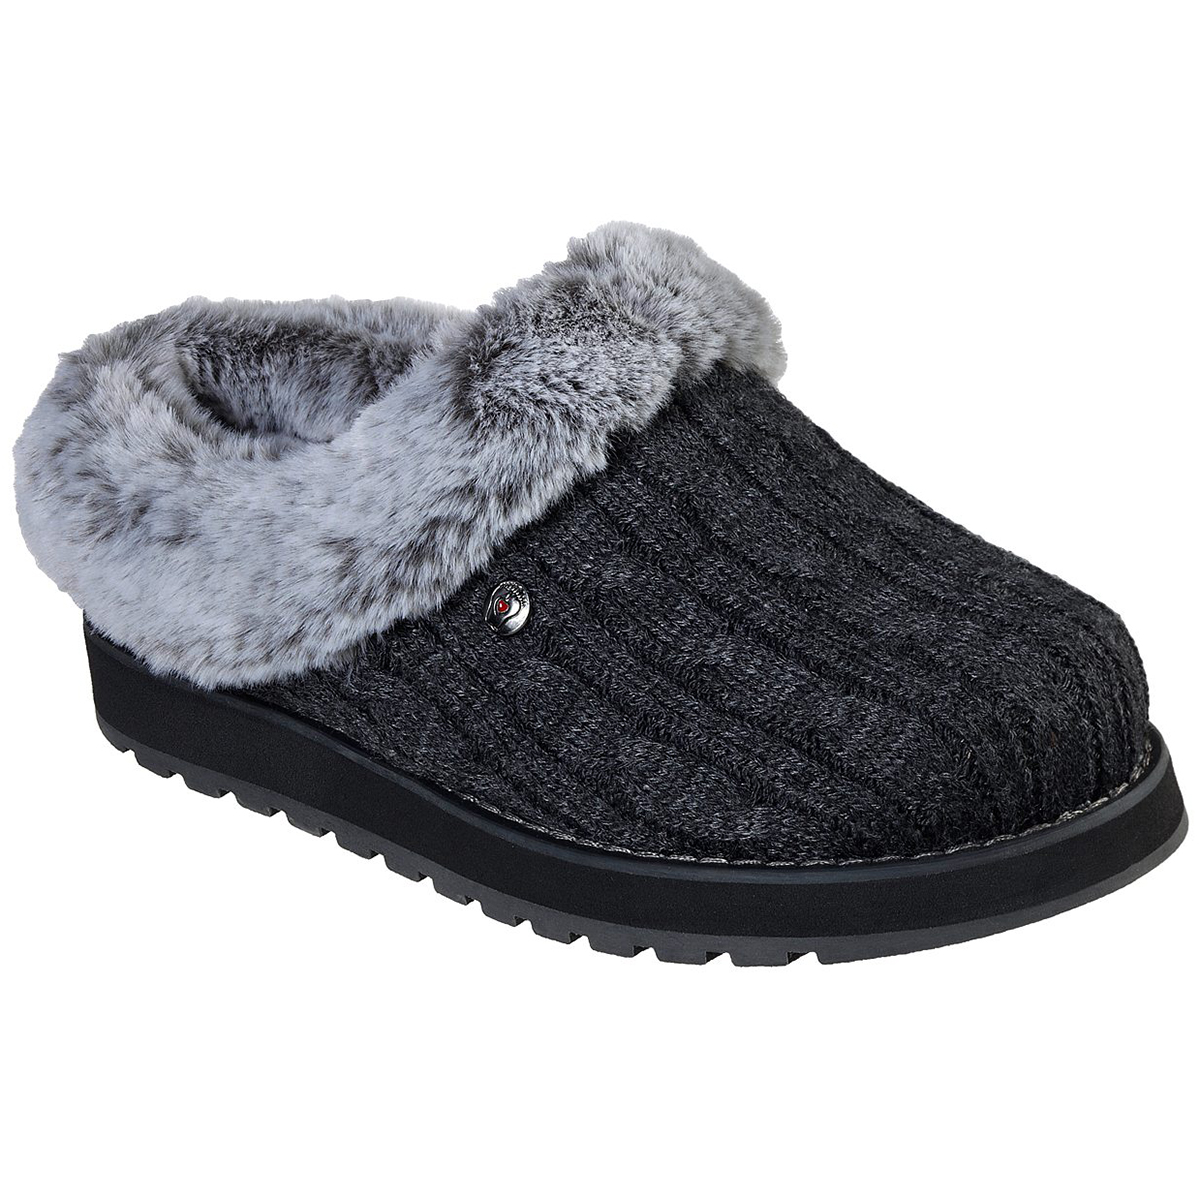 Skechers Women's Keepsakes Ice Angel Clog Slipper - Black, 9